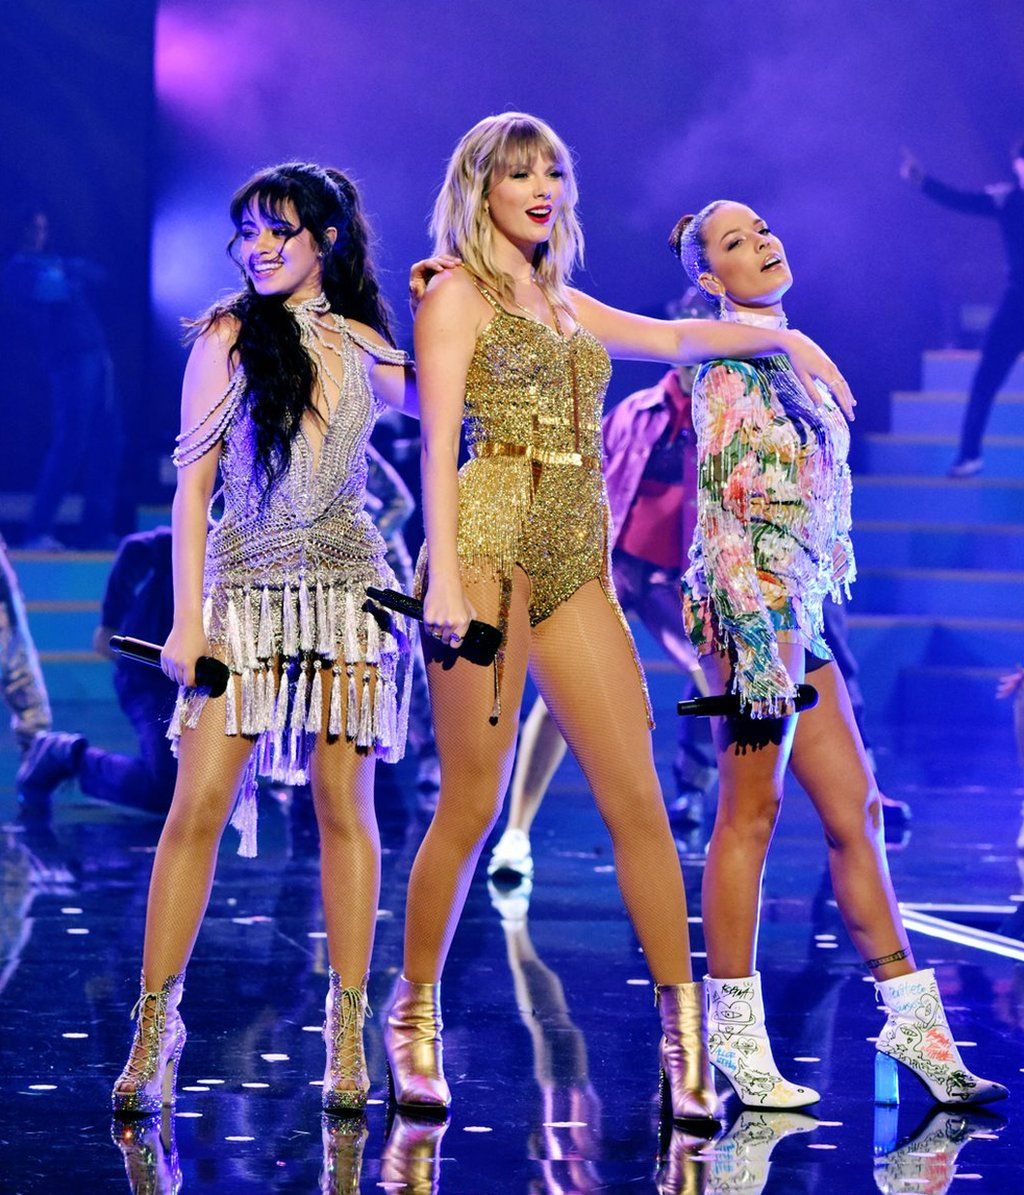 Camila Cabello, Taylor Swift and Halsey